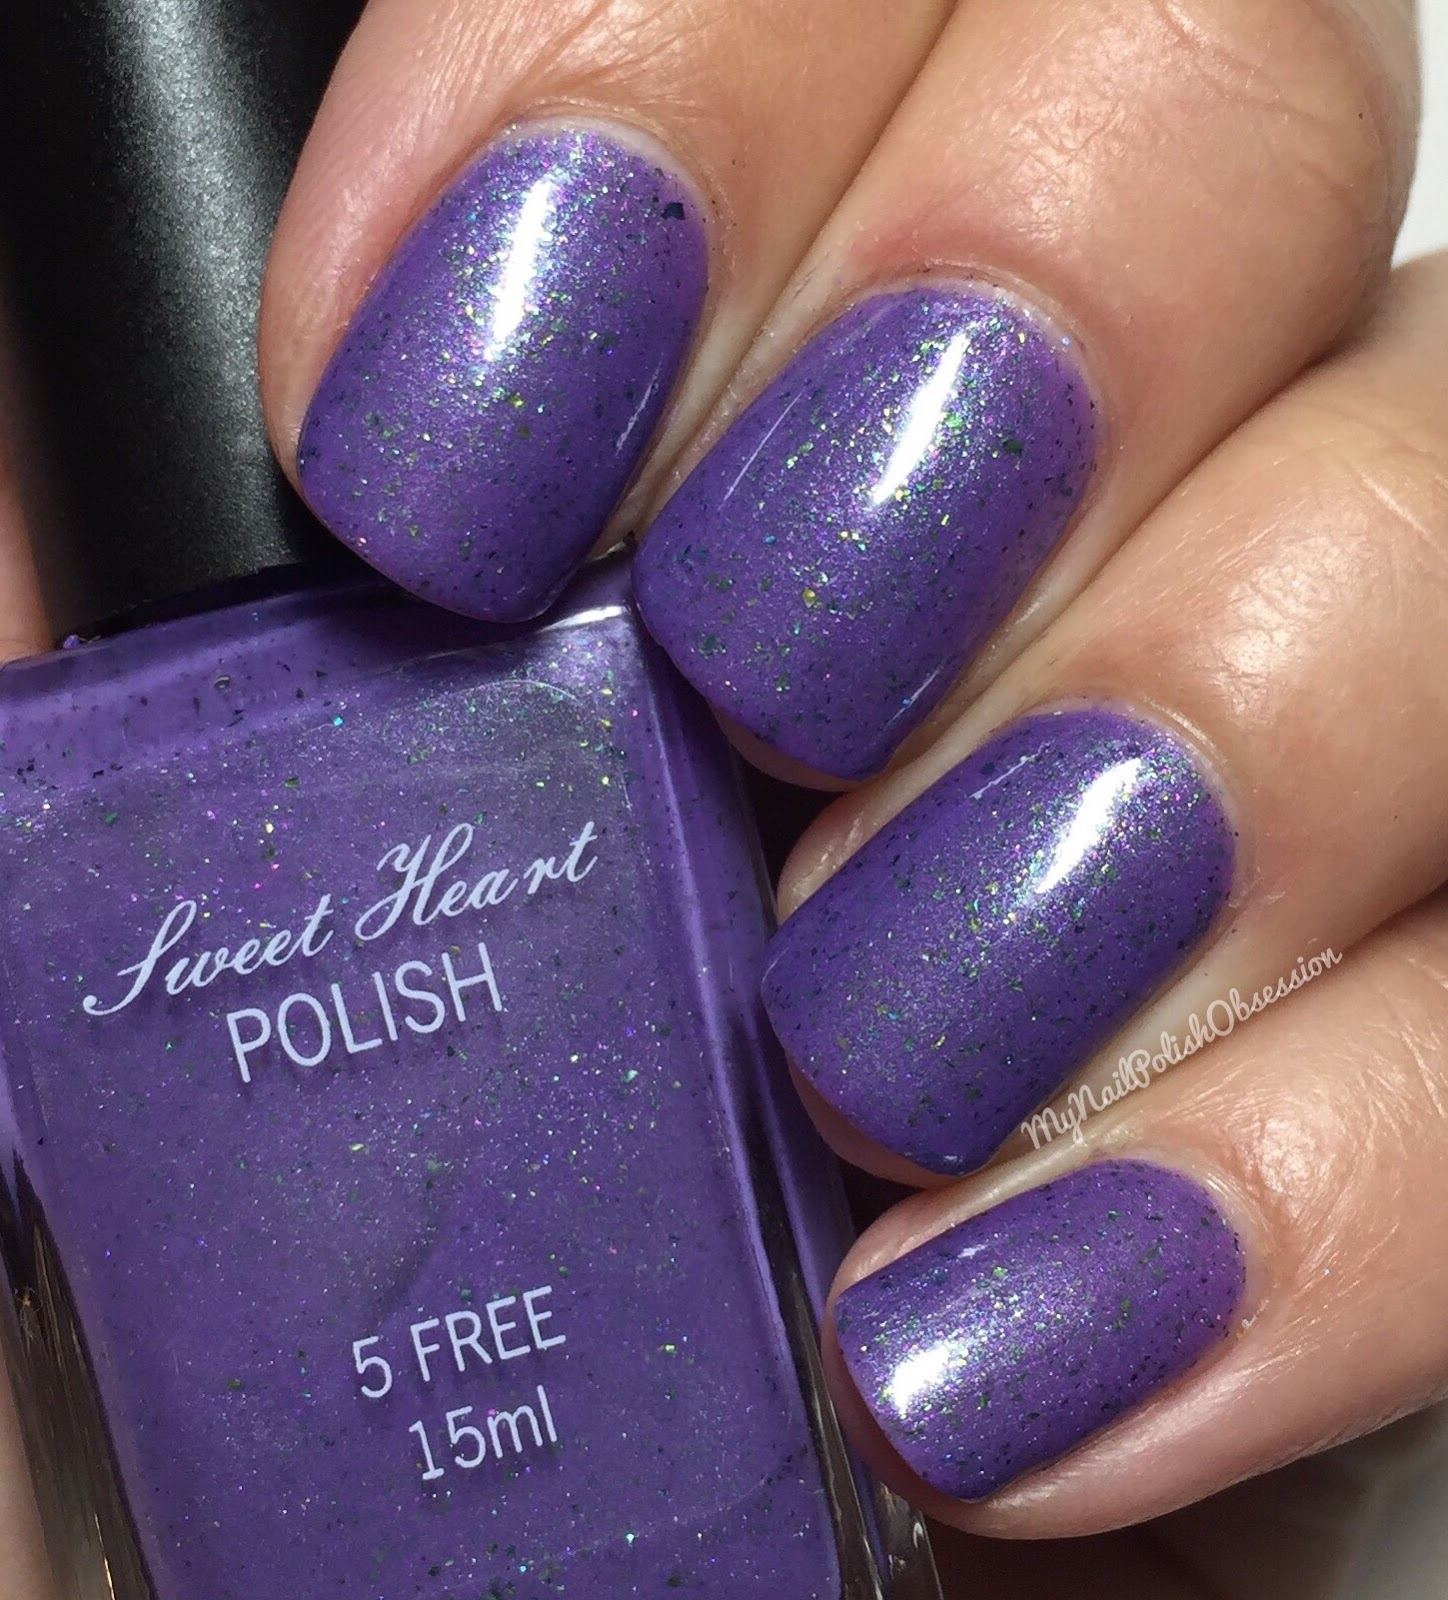 Magnificent Fast And Easy Nail Art Small Marc Jacobs Nail Polish Review Square Gel Nail Polish Design Ideas Dmso Nail Fungus Young Nail Art With Toothpick Videos RedOrly Nail Polish Colors Drunk On The Good Life   By Jen Of My Nail Polish Obsession \u2013 Ellagee